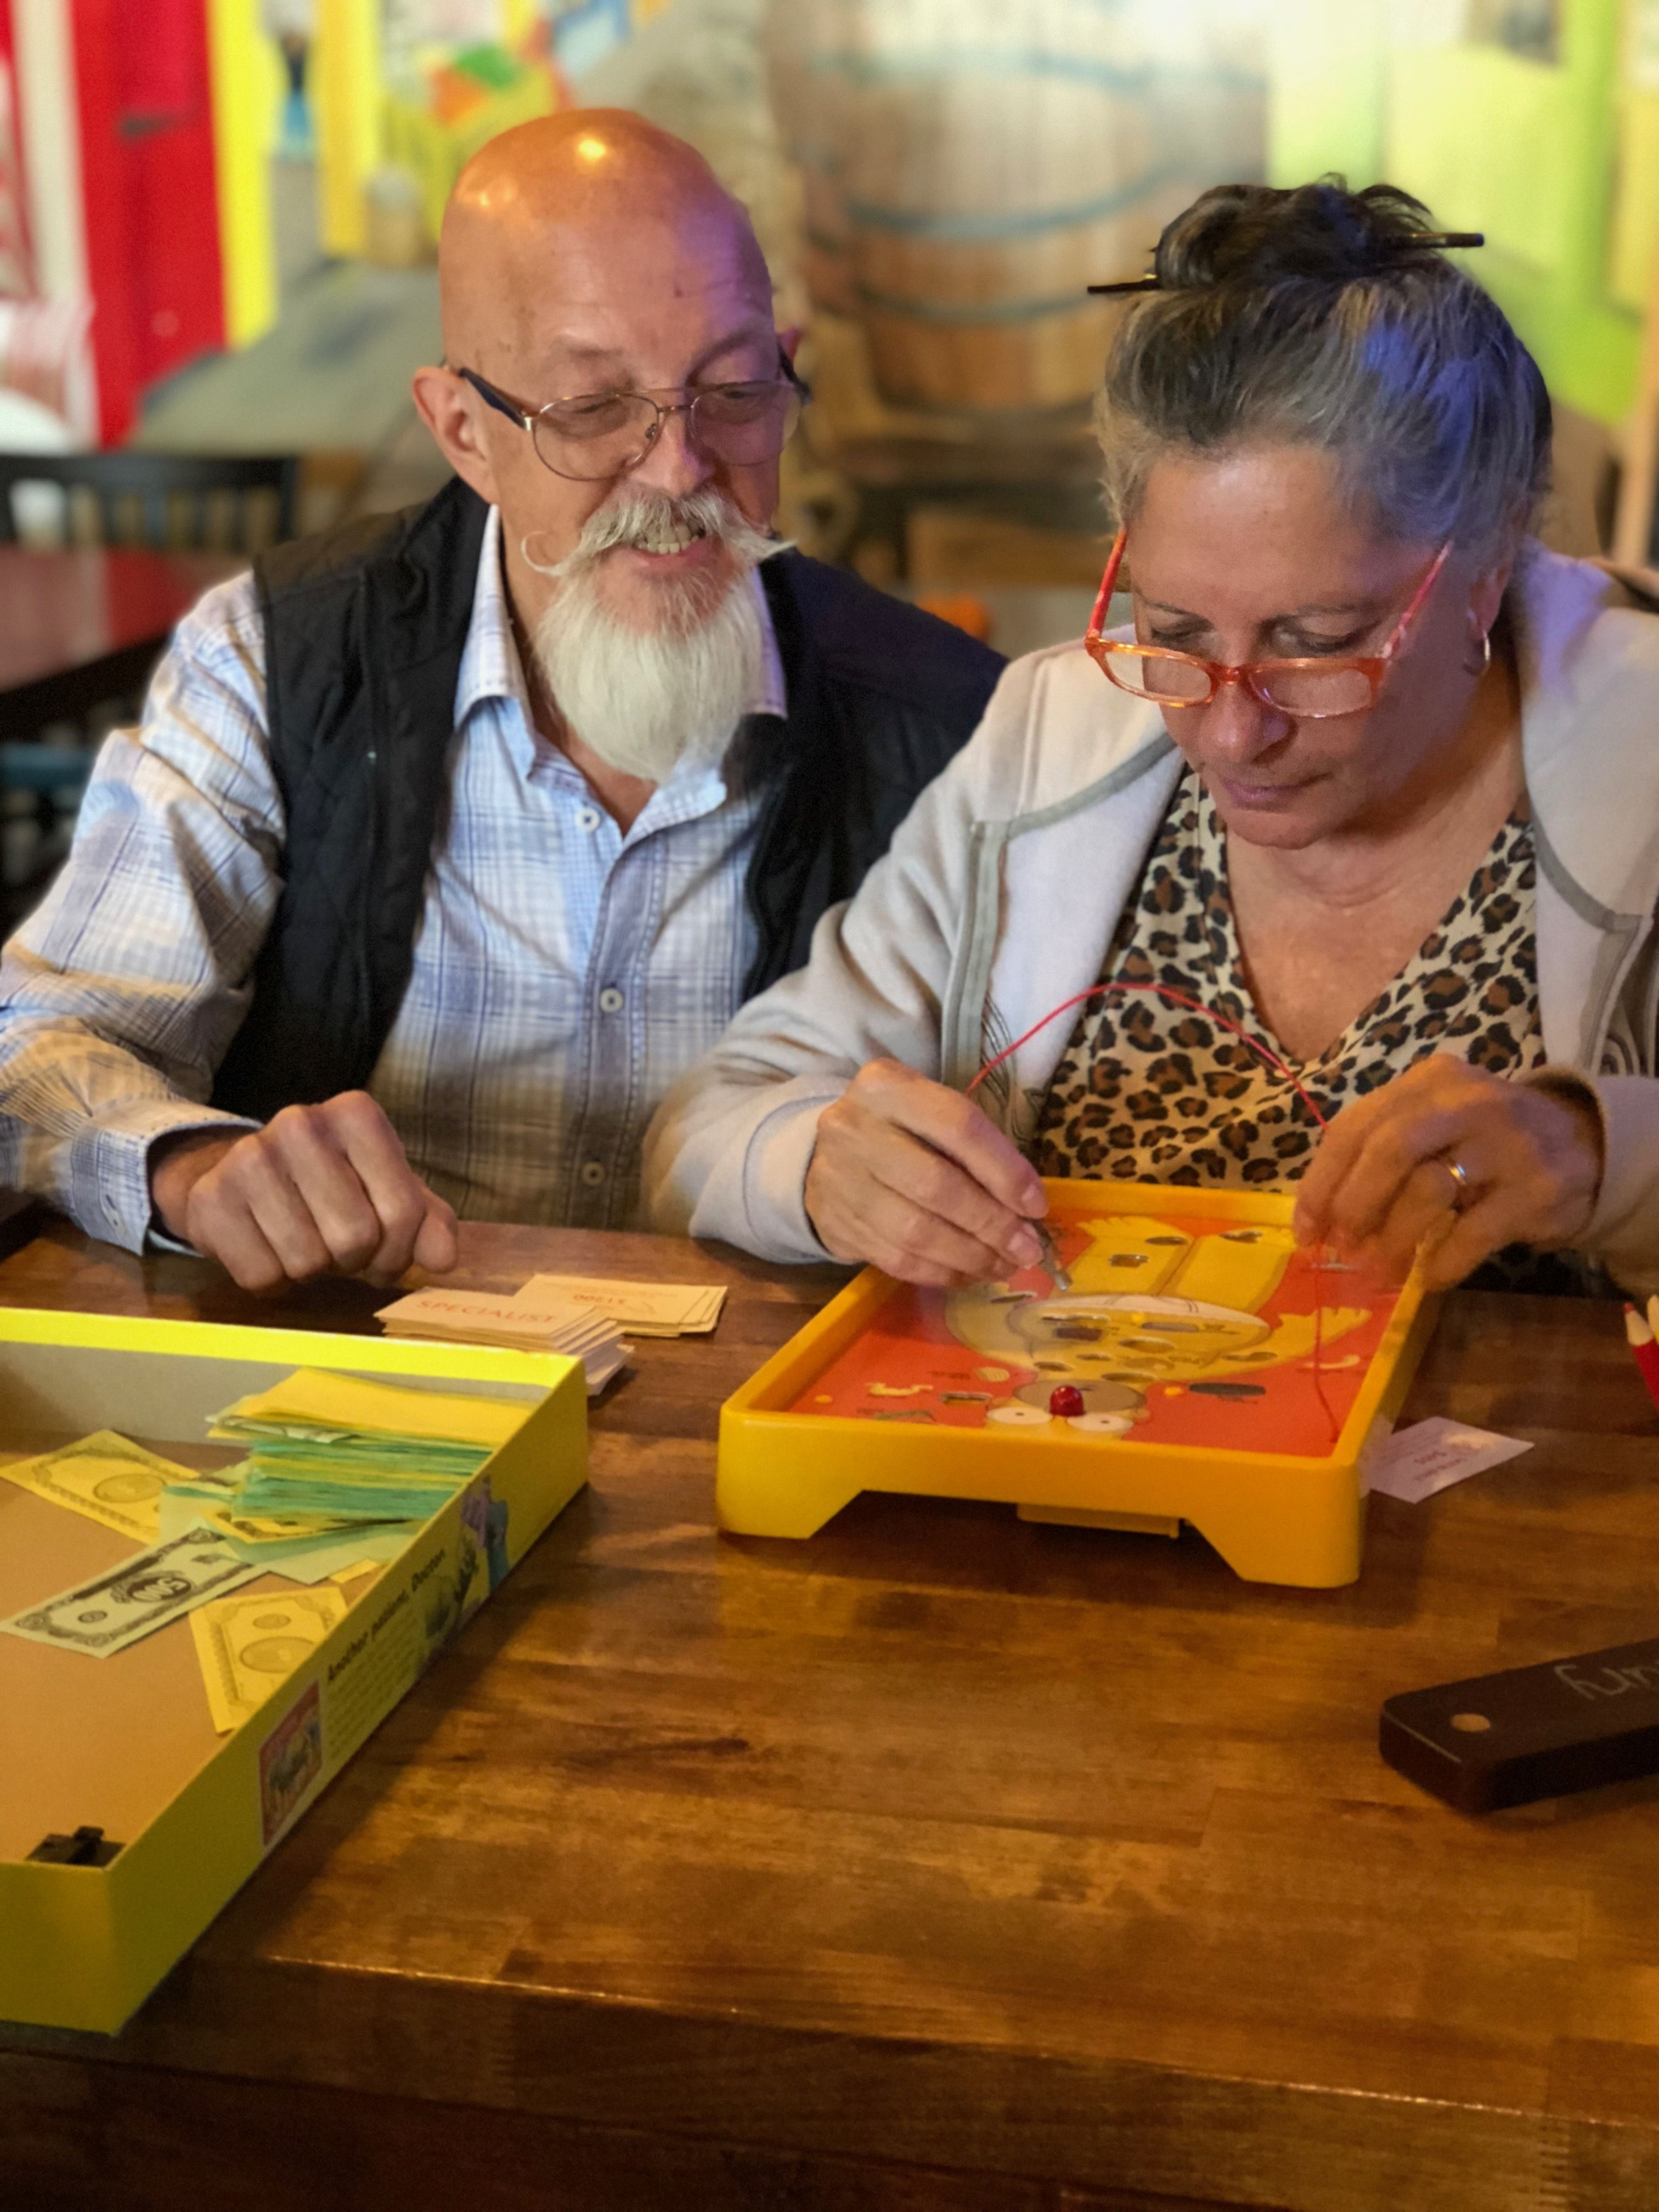 Board games at shebeens taproom tap room brewery